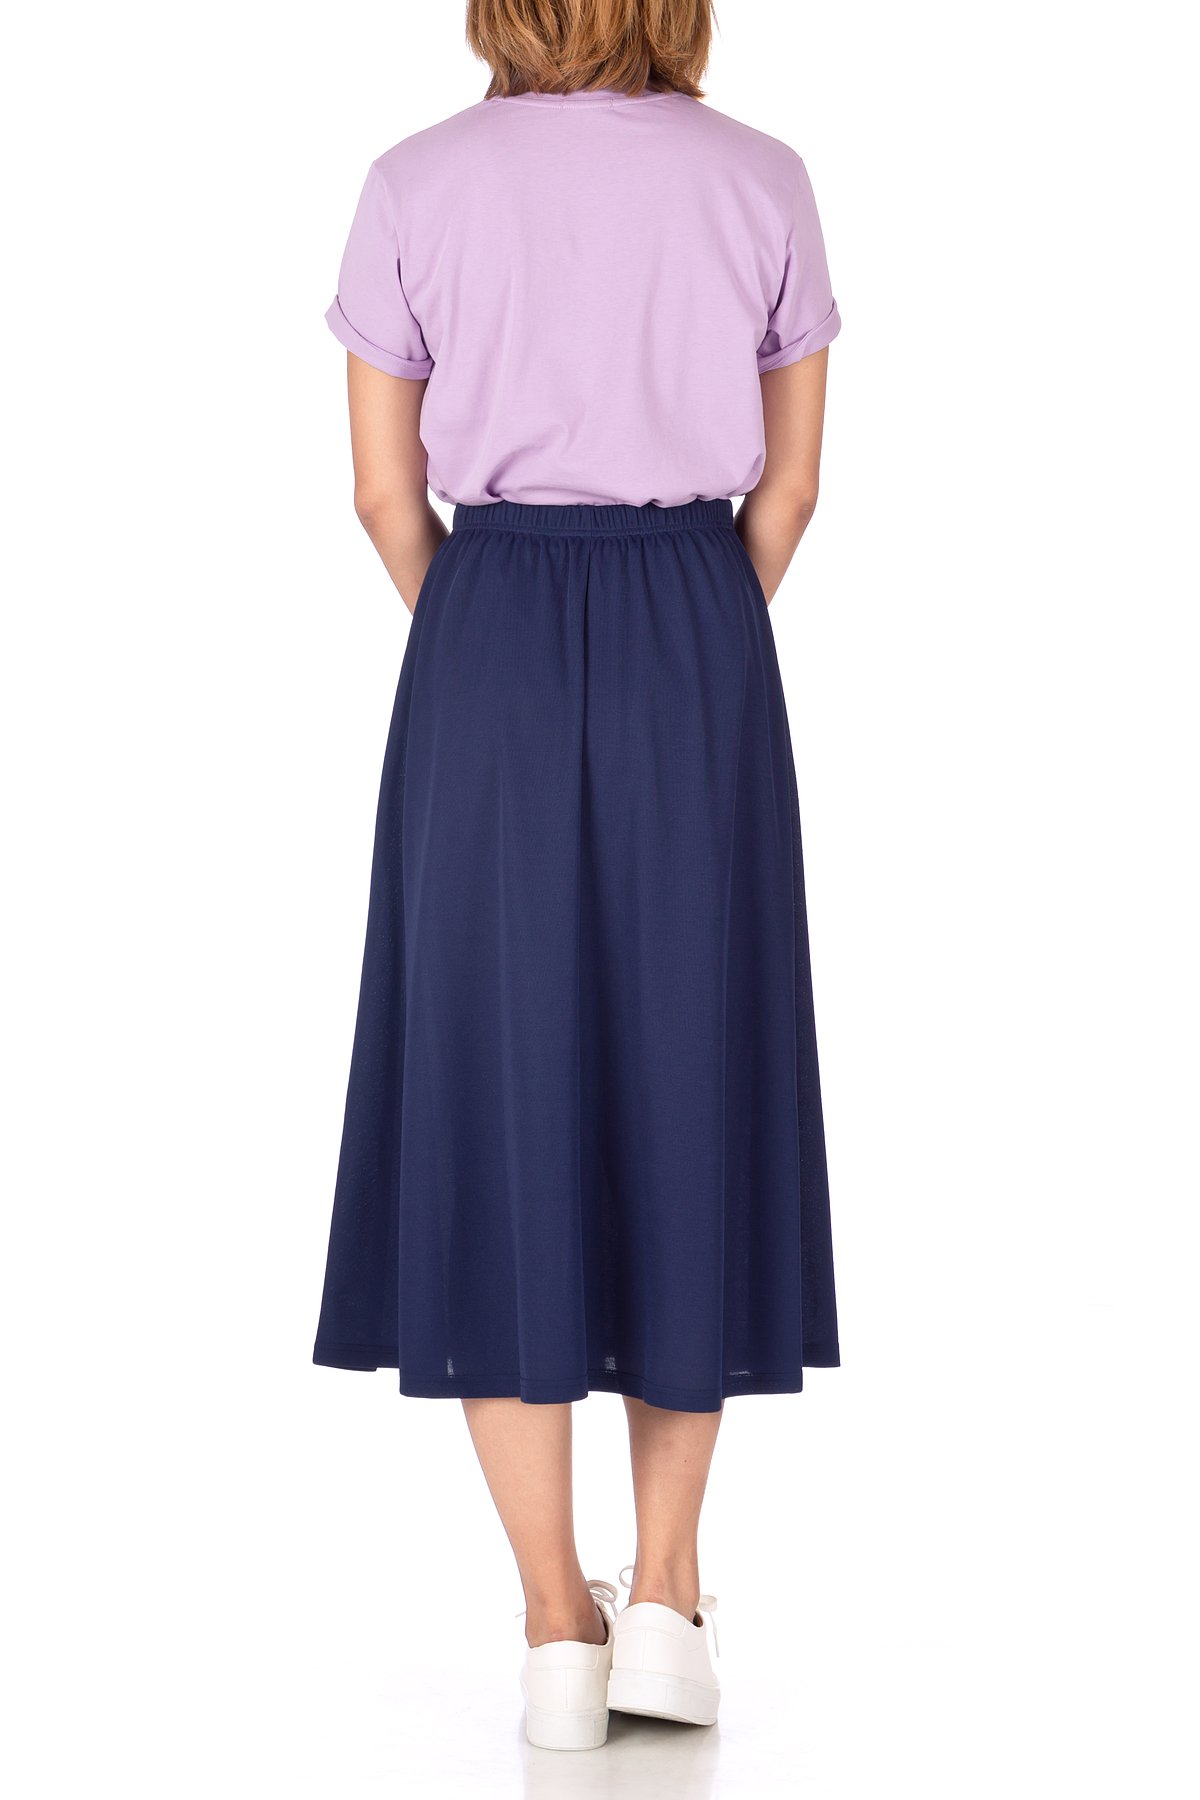 Brilliant Elastic Waist Full Flared Long Skirt Navy 03